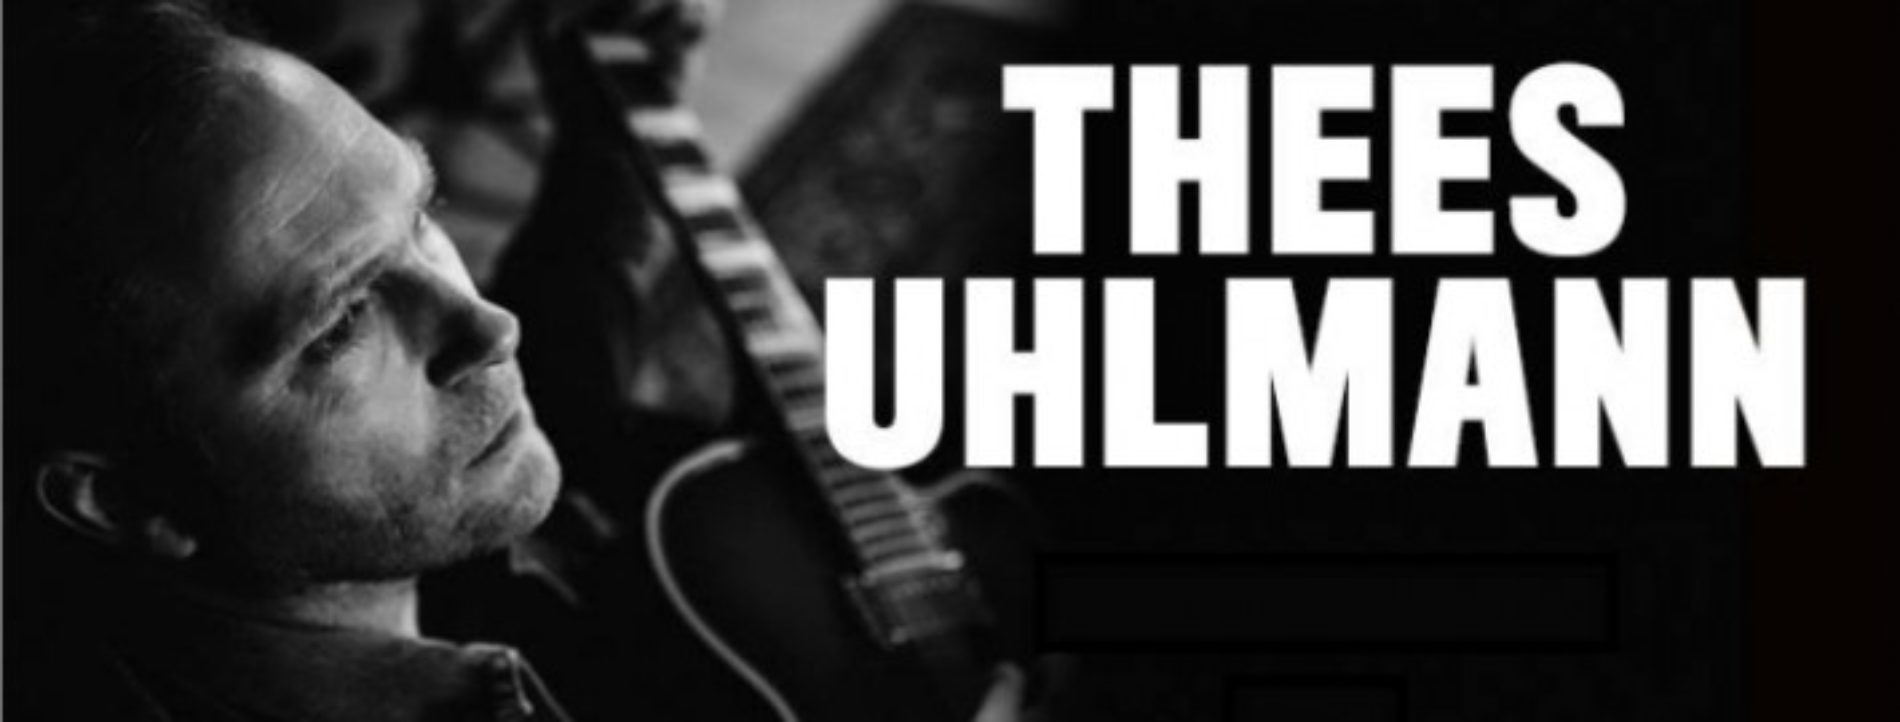 Thees Uhlmann & Band